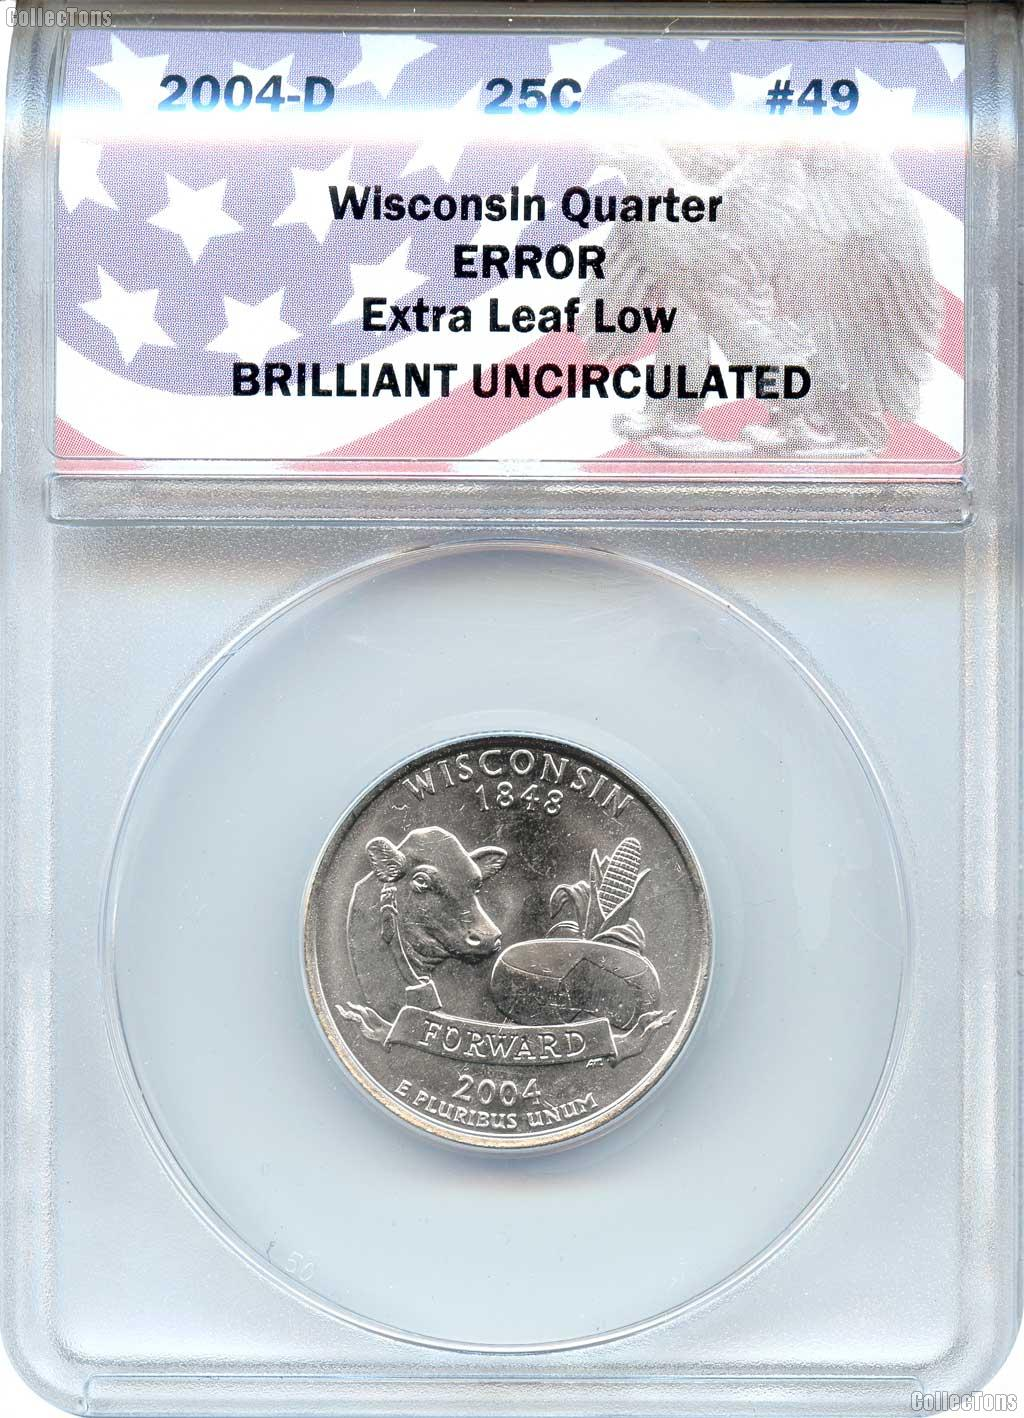 CollecTons Keepers #49: 2004-D Wisconsin Quarter, Extra Leaf Low, Error Coin